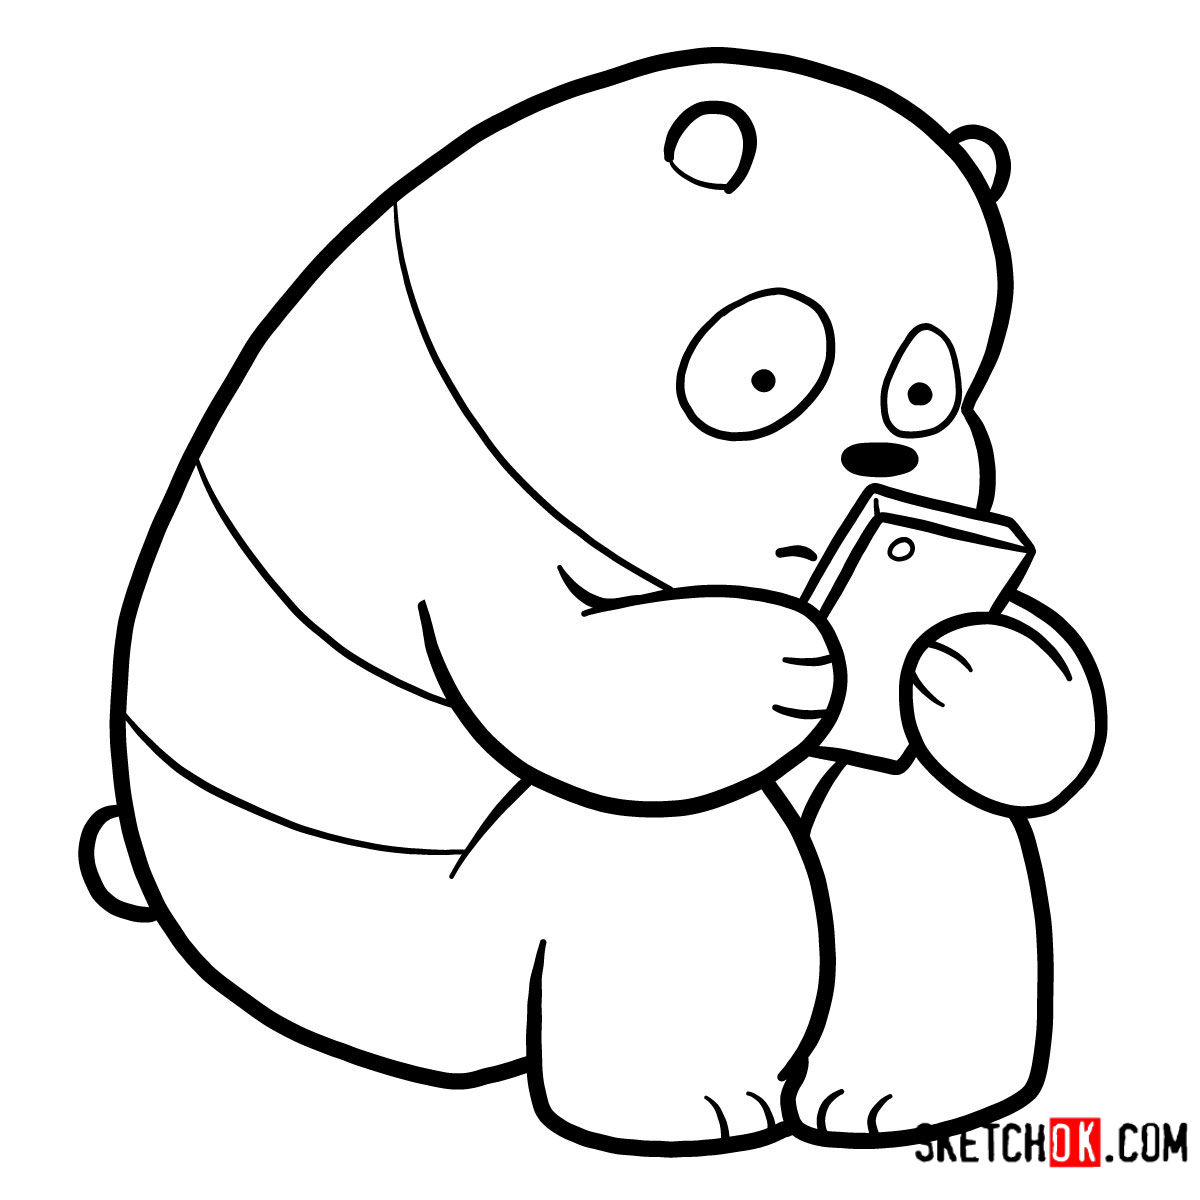 How to draw Panda Bear with a smartphone | We Bare Bears - step 08